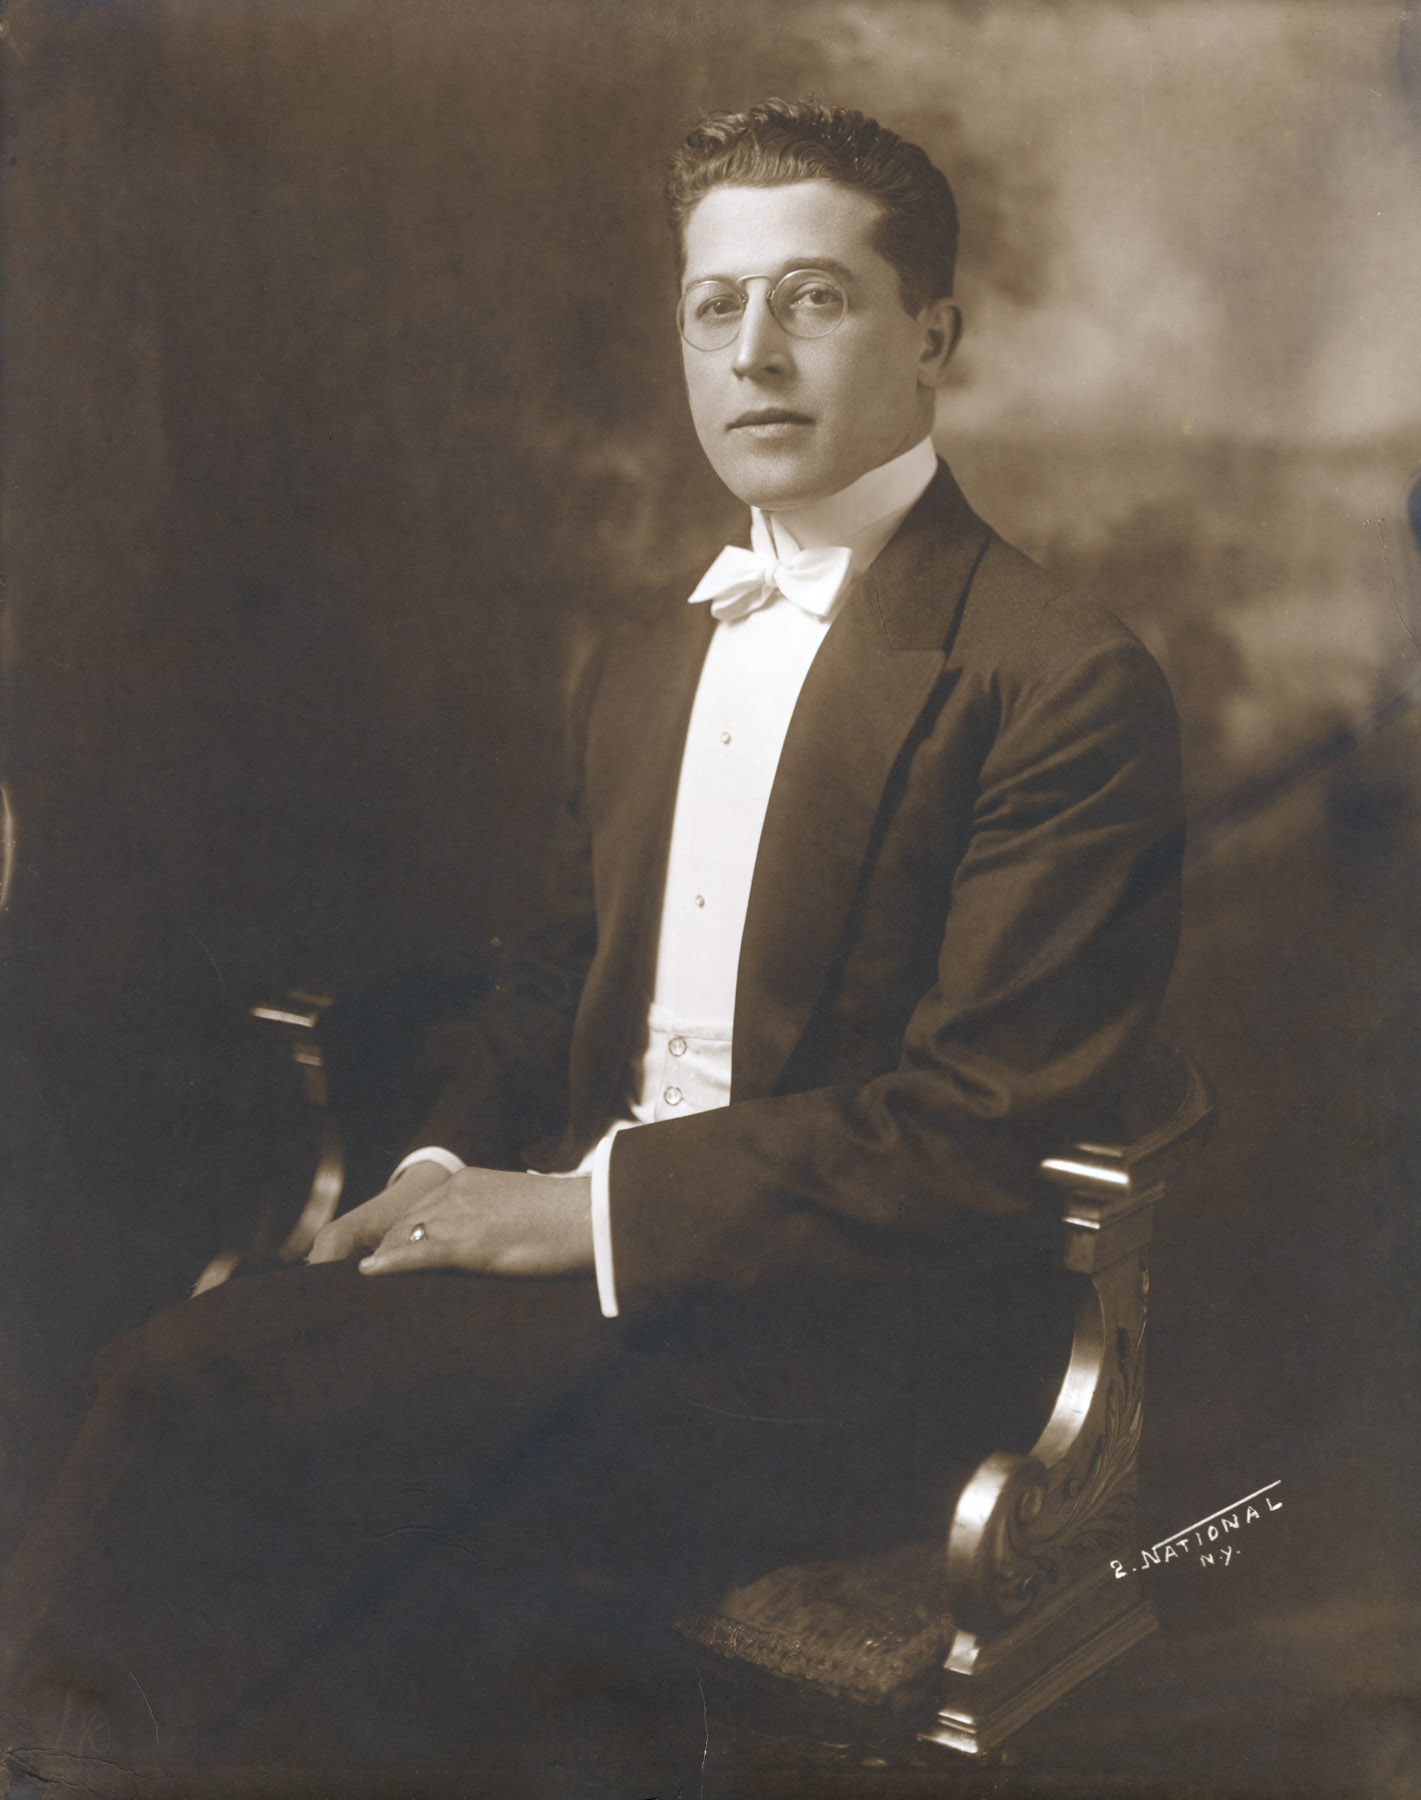 Bill Fried (c.1920)